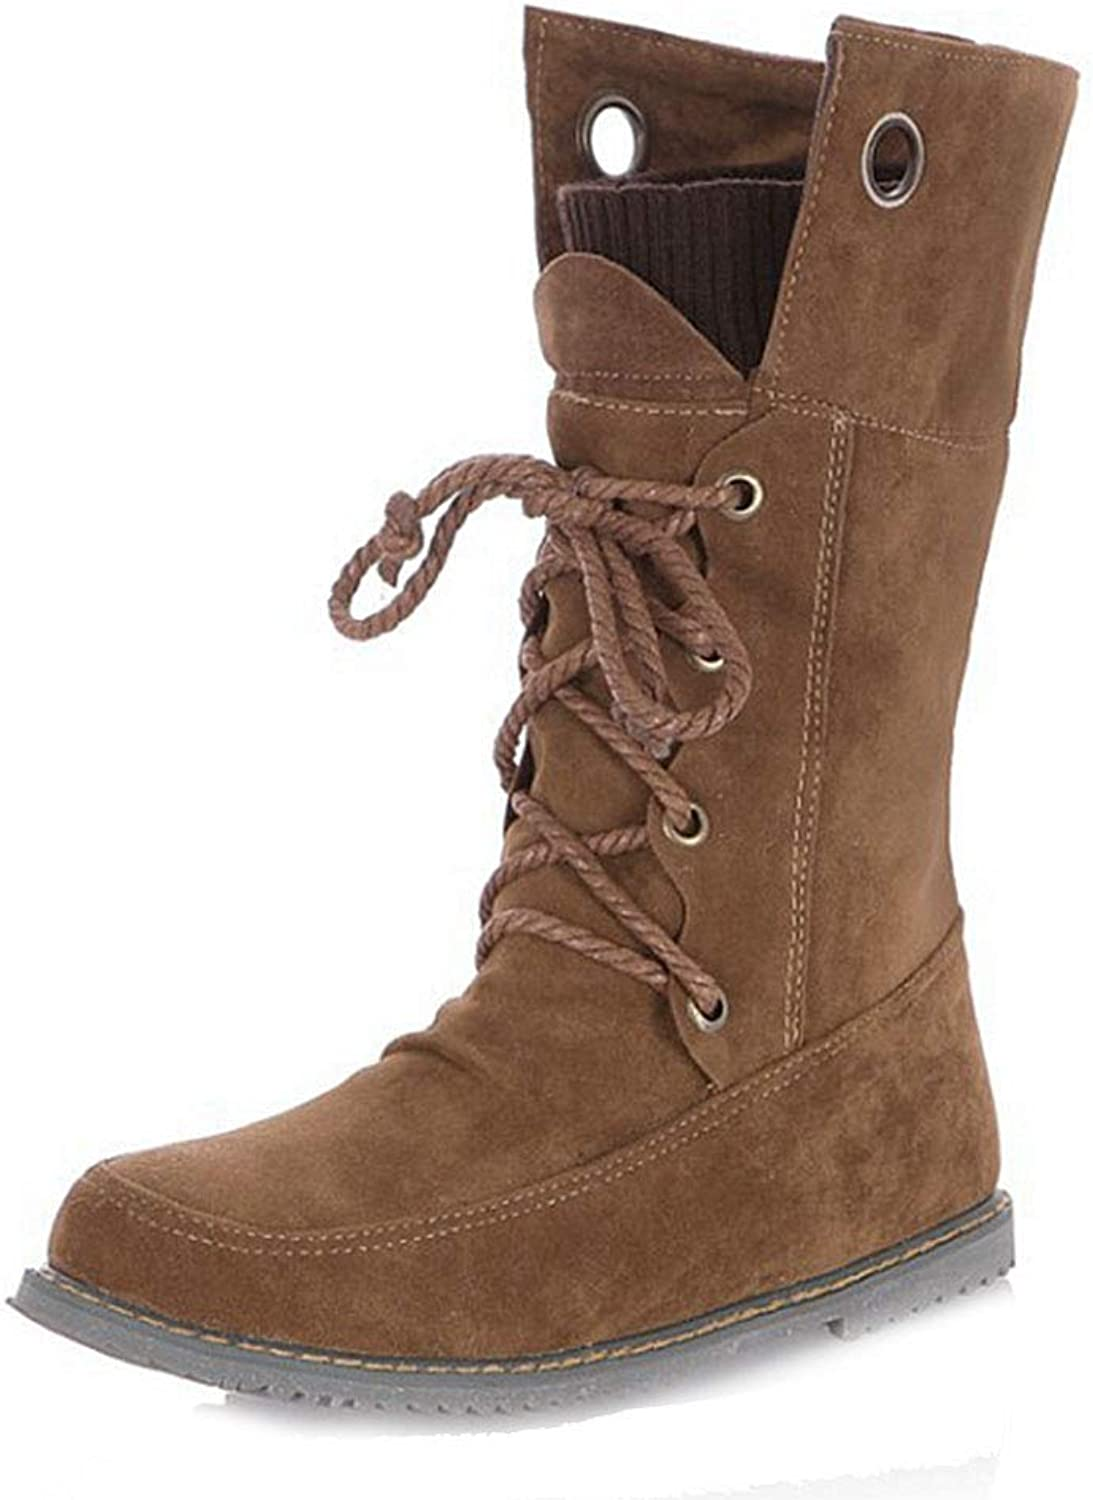 Elsa Wilcox Women Round Toe Comfort Riding Bootie Casual Walking Short Martin Boot Lace Up Flat Combat Ankle Boots